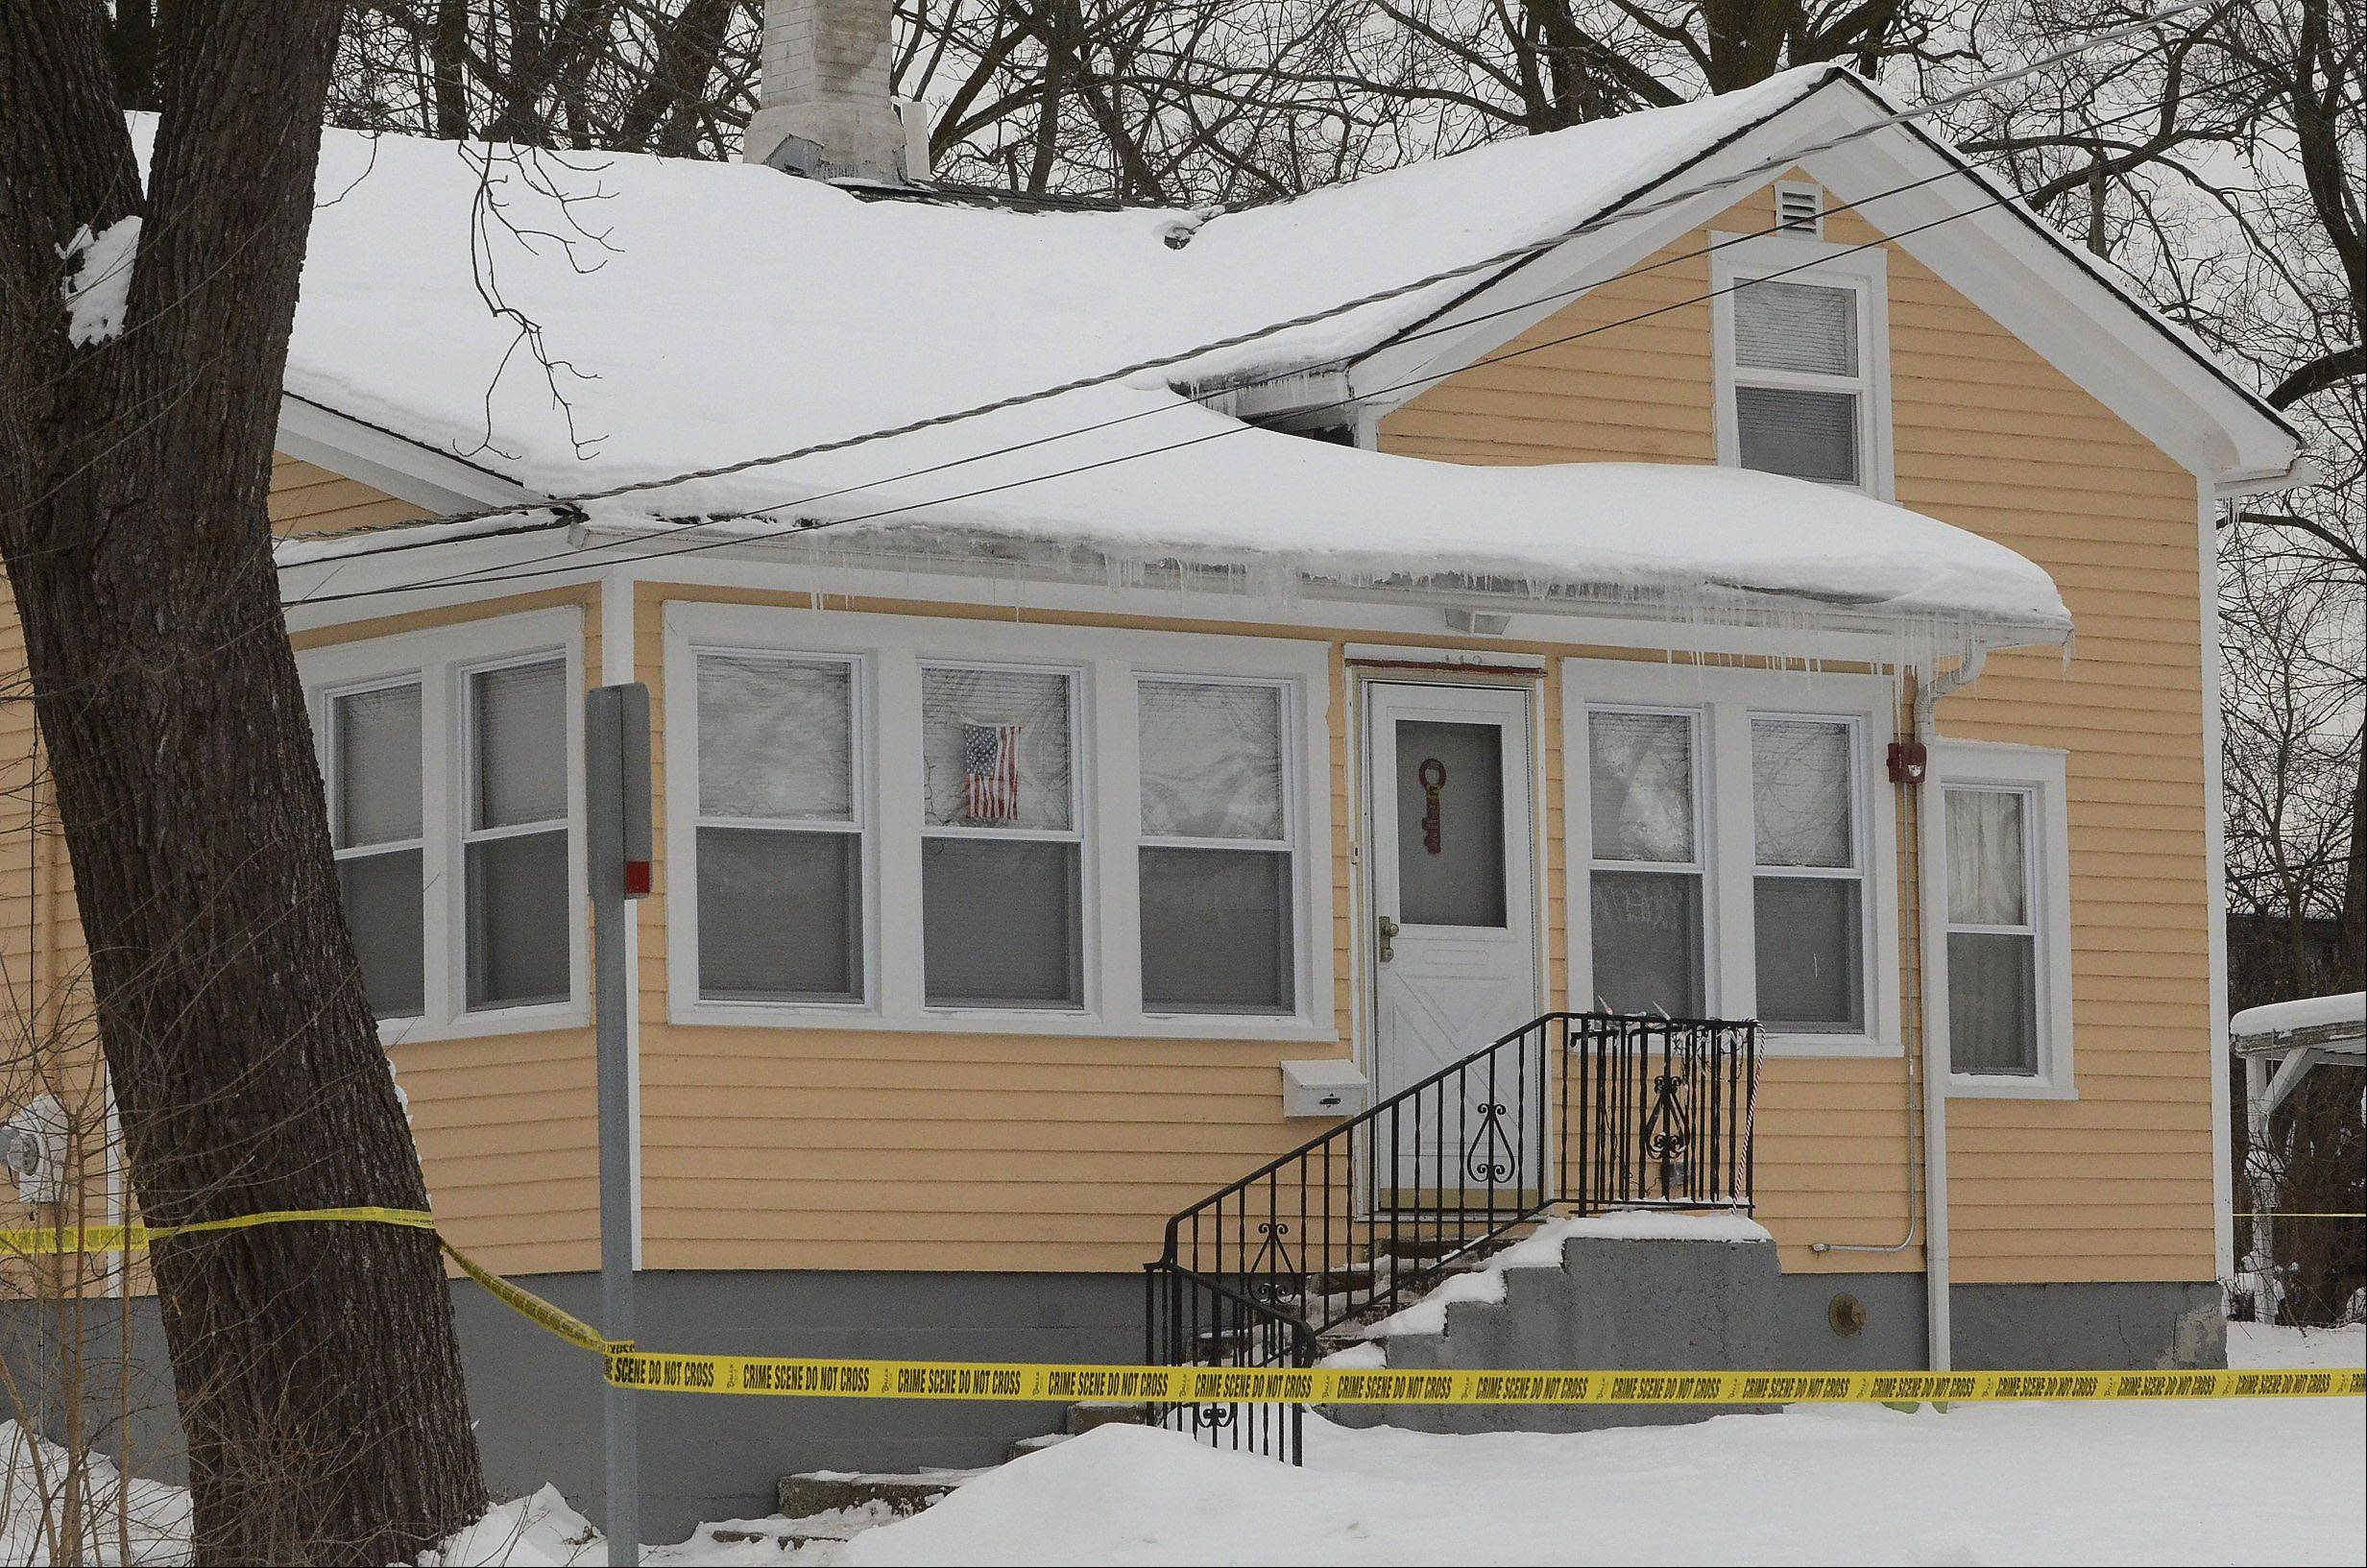 The Department of Children and Family Services is investigating allegations of neglect against the parents of a Barrington girl whom authorities found dead Wednesday at a home on the 100 block of South Hager Avenue.